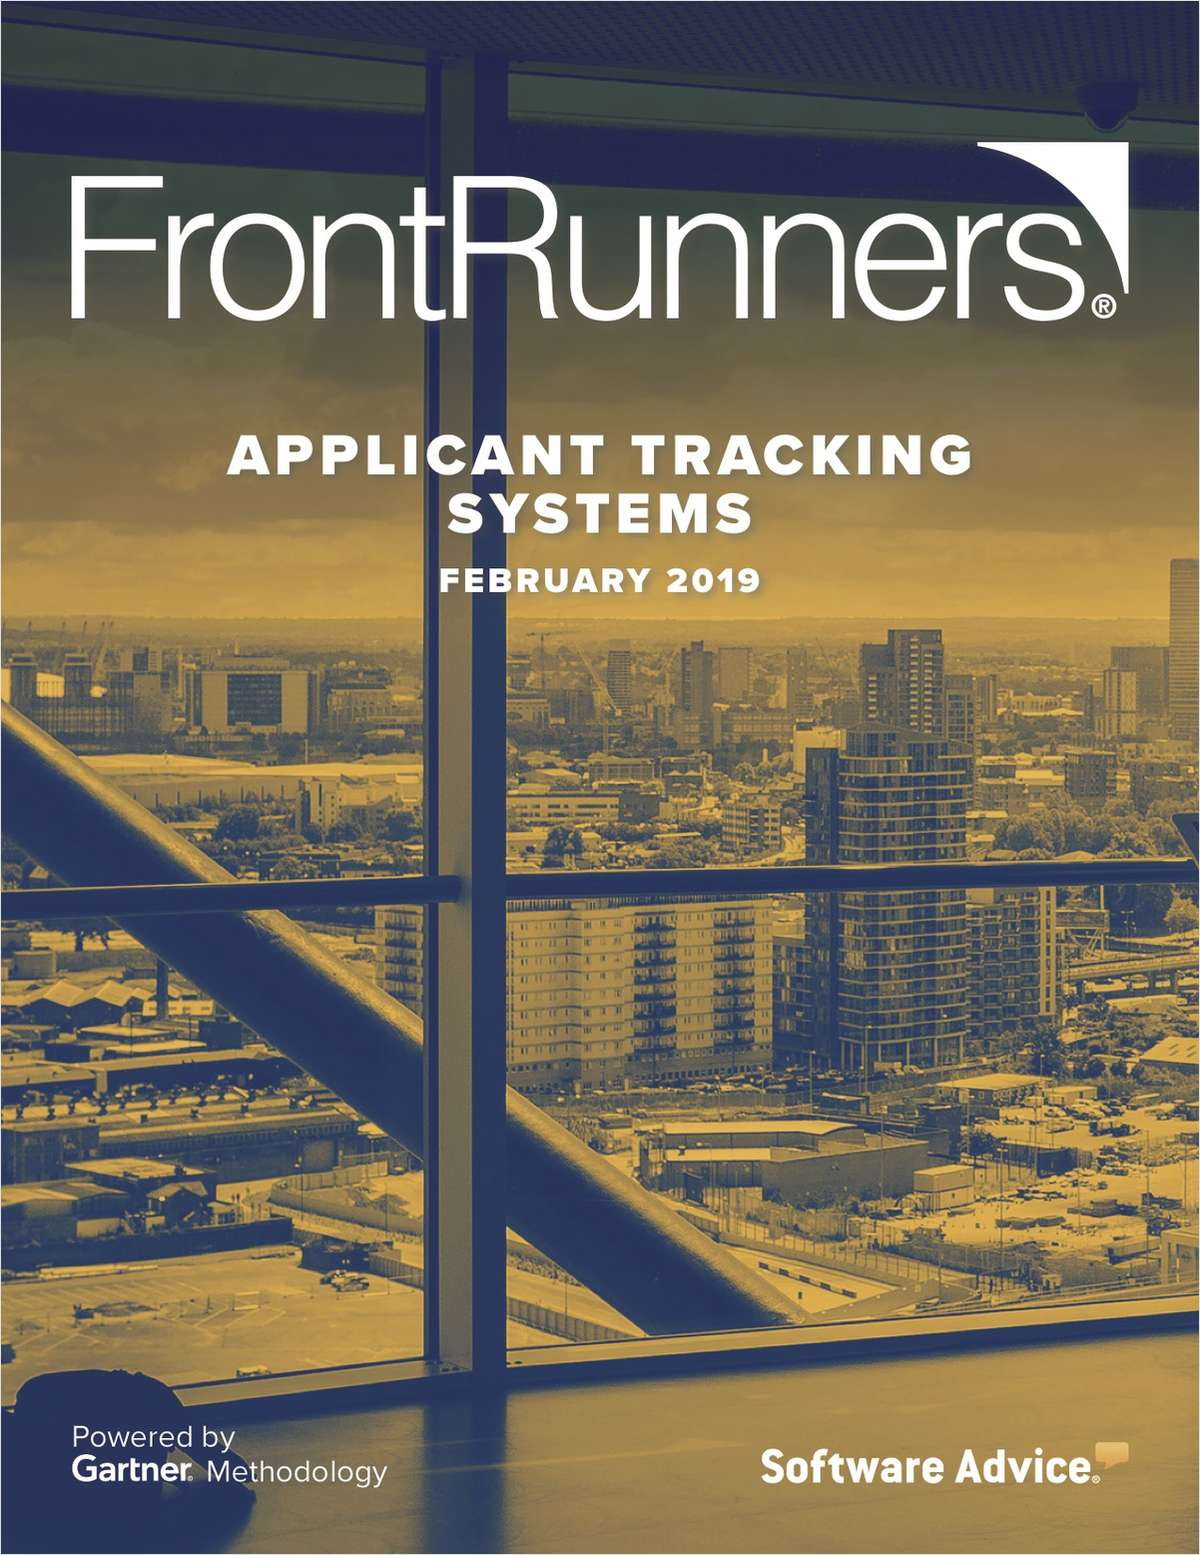 Top Rated FrontRunners for 2019 Applicant Tracking Software